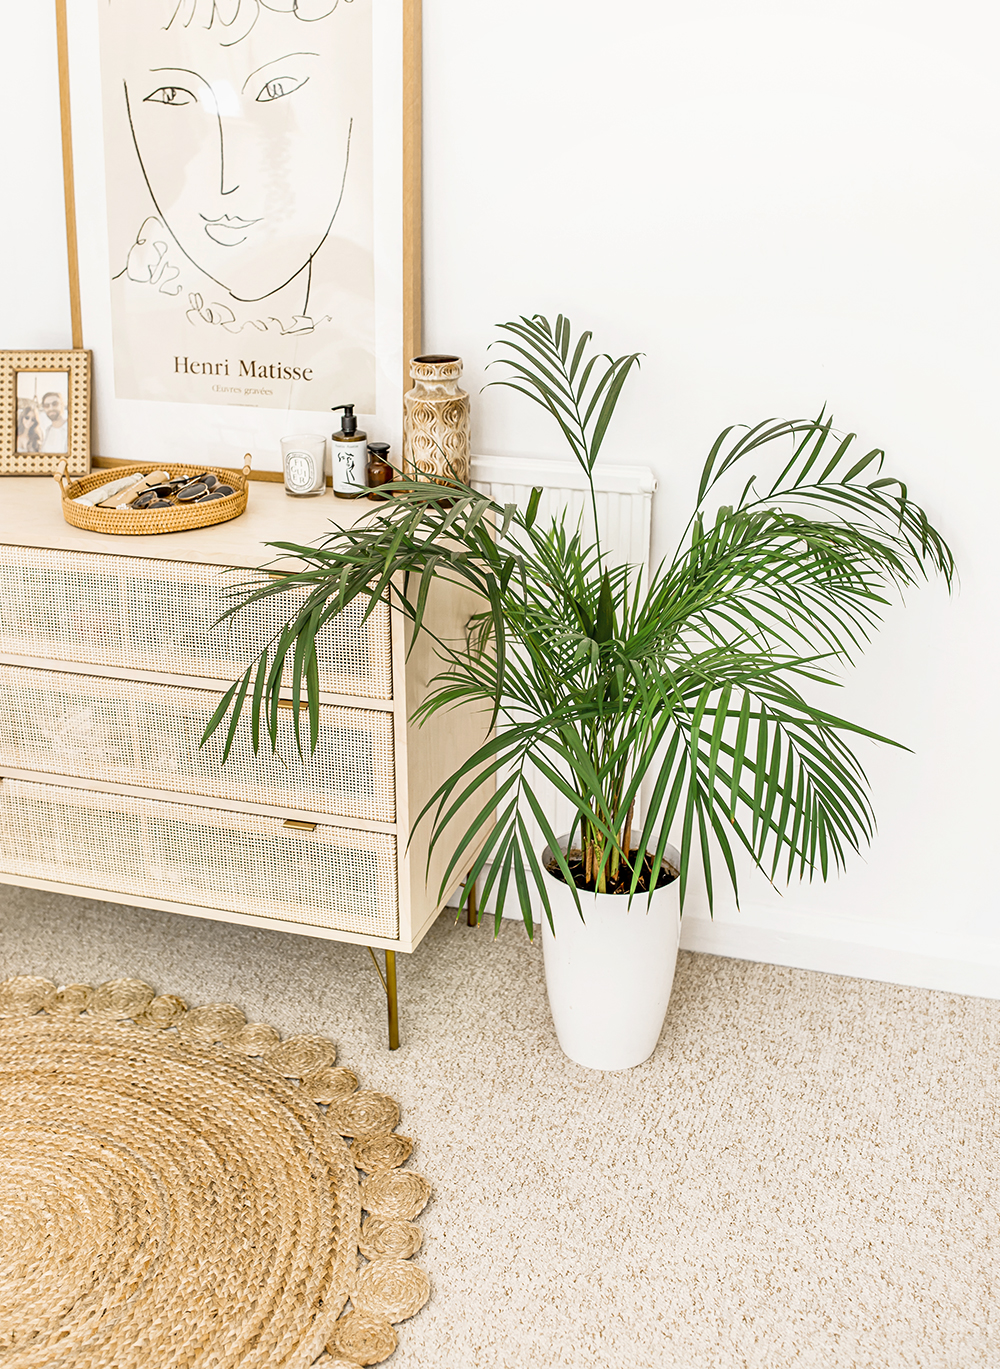 1-Acera-Palm-Chrysalidocarpus-lutescens-kelseyinlondon-homewithkelsey-plant-guide-best-indoor-plants